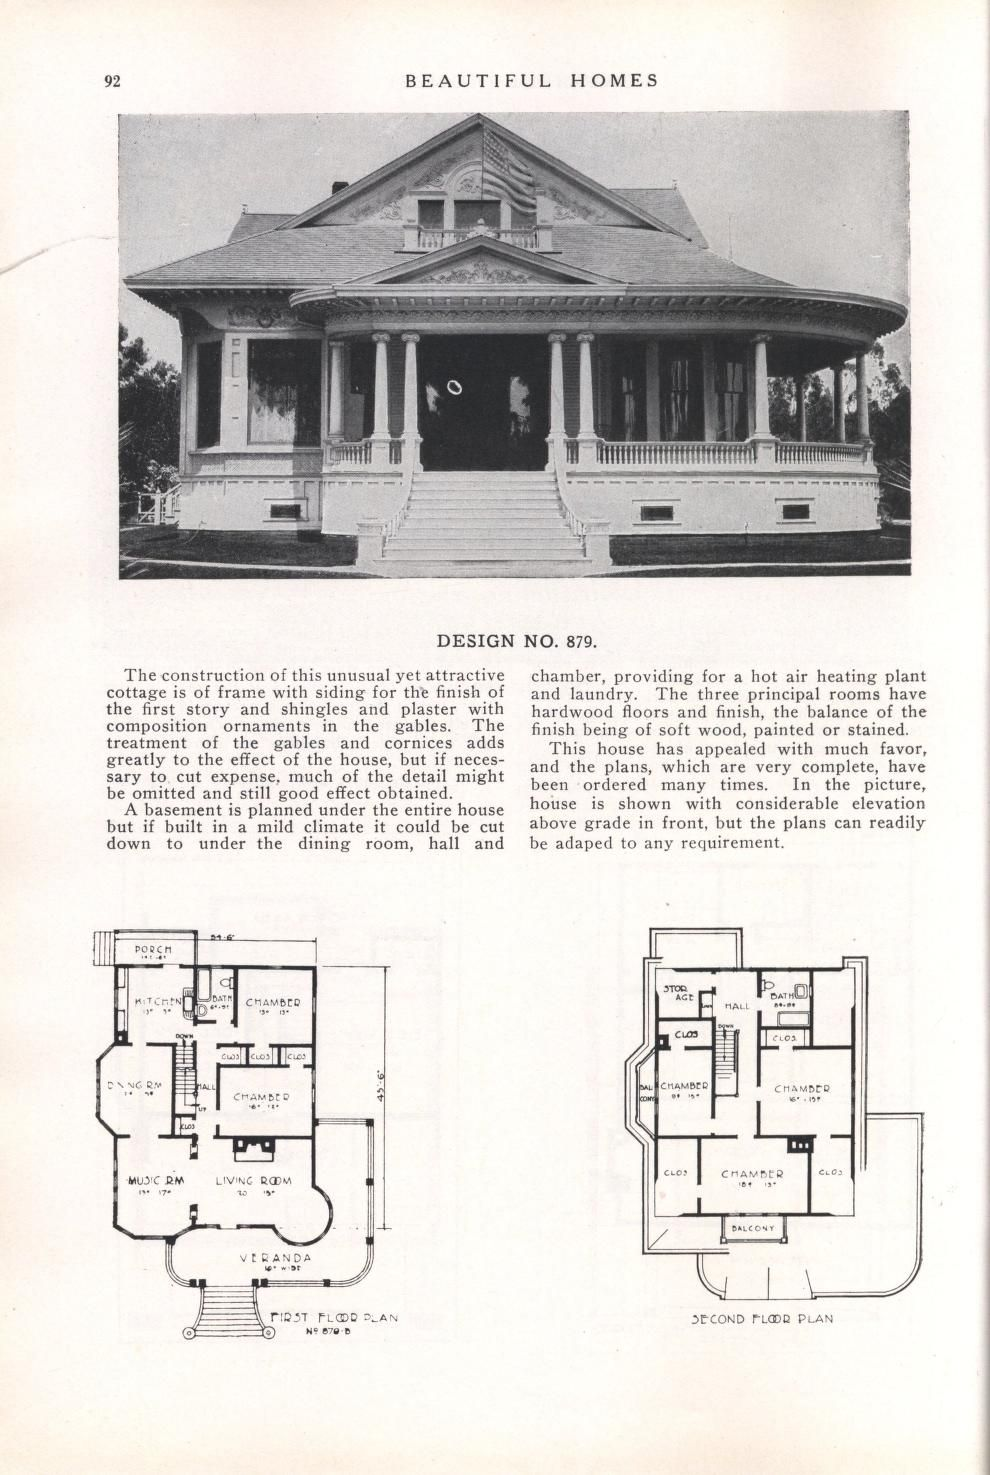 Beautiful Homes : Keith Corp. : Free Download, Borrow, And